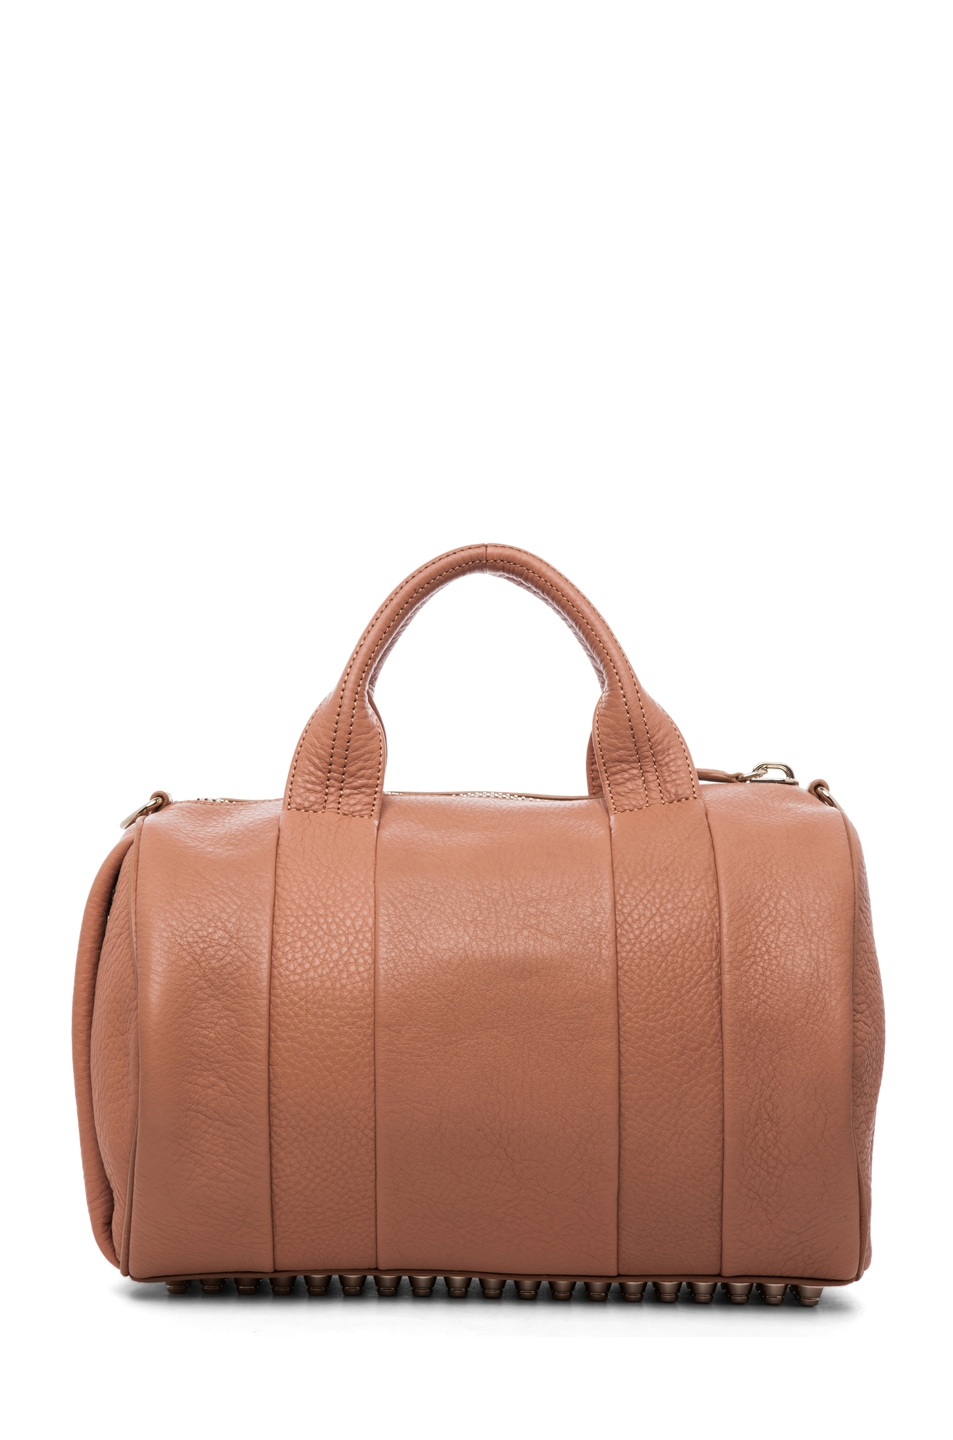 Image 2 of Alexander Wang Rocco Soft Pebble Leather Bag in Tan